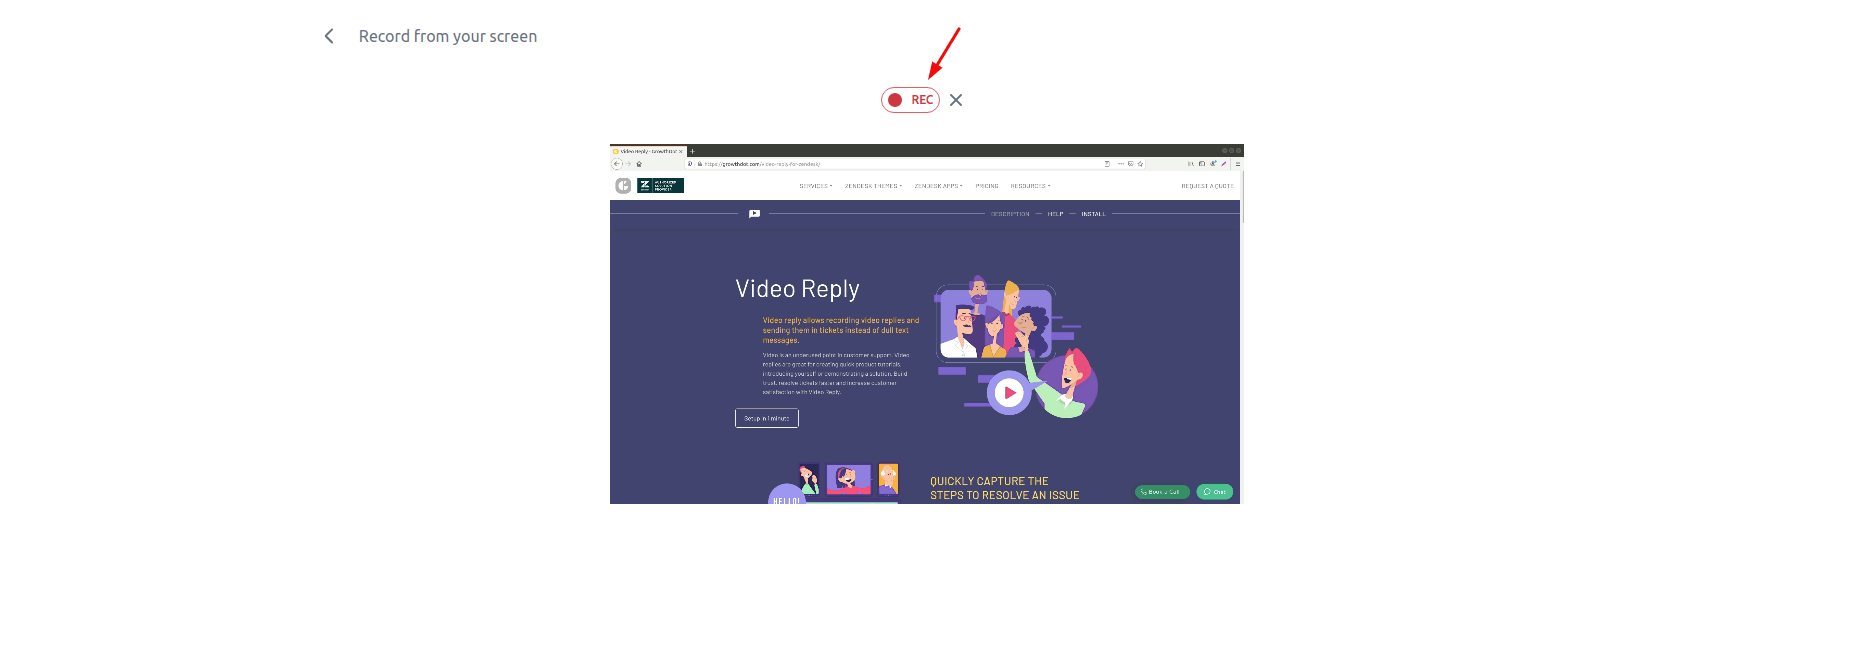 Video Reply For Zendesk Rec